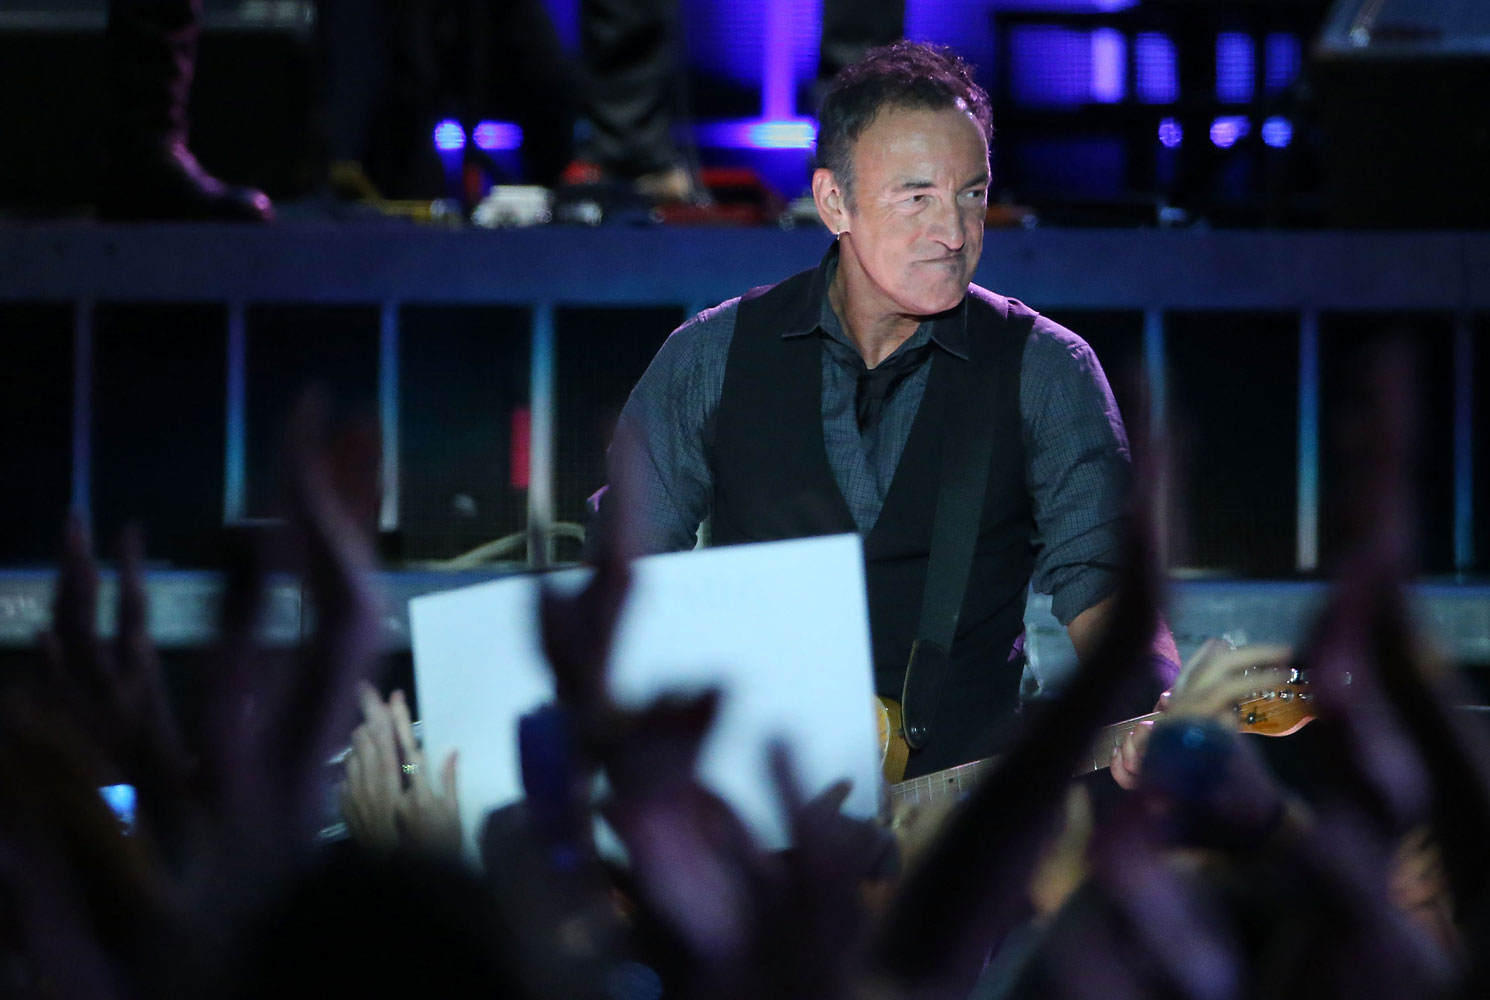 Bruce Springsteen perfomrs live on stange with the E Street Band on March 1, 2014 in Auckland, New Zealand.